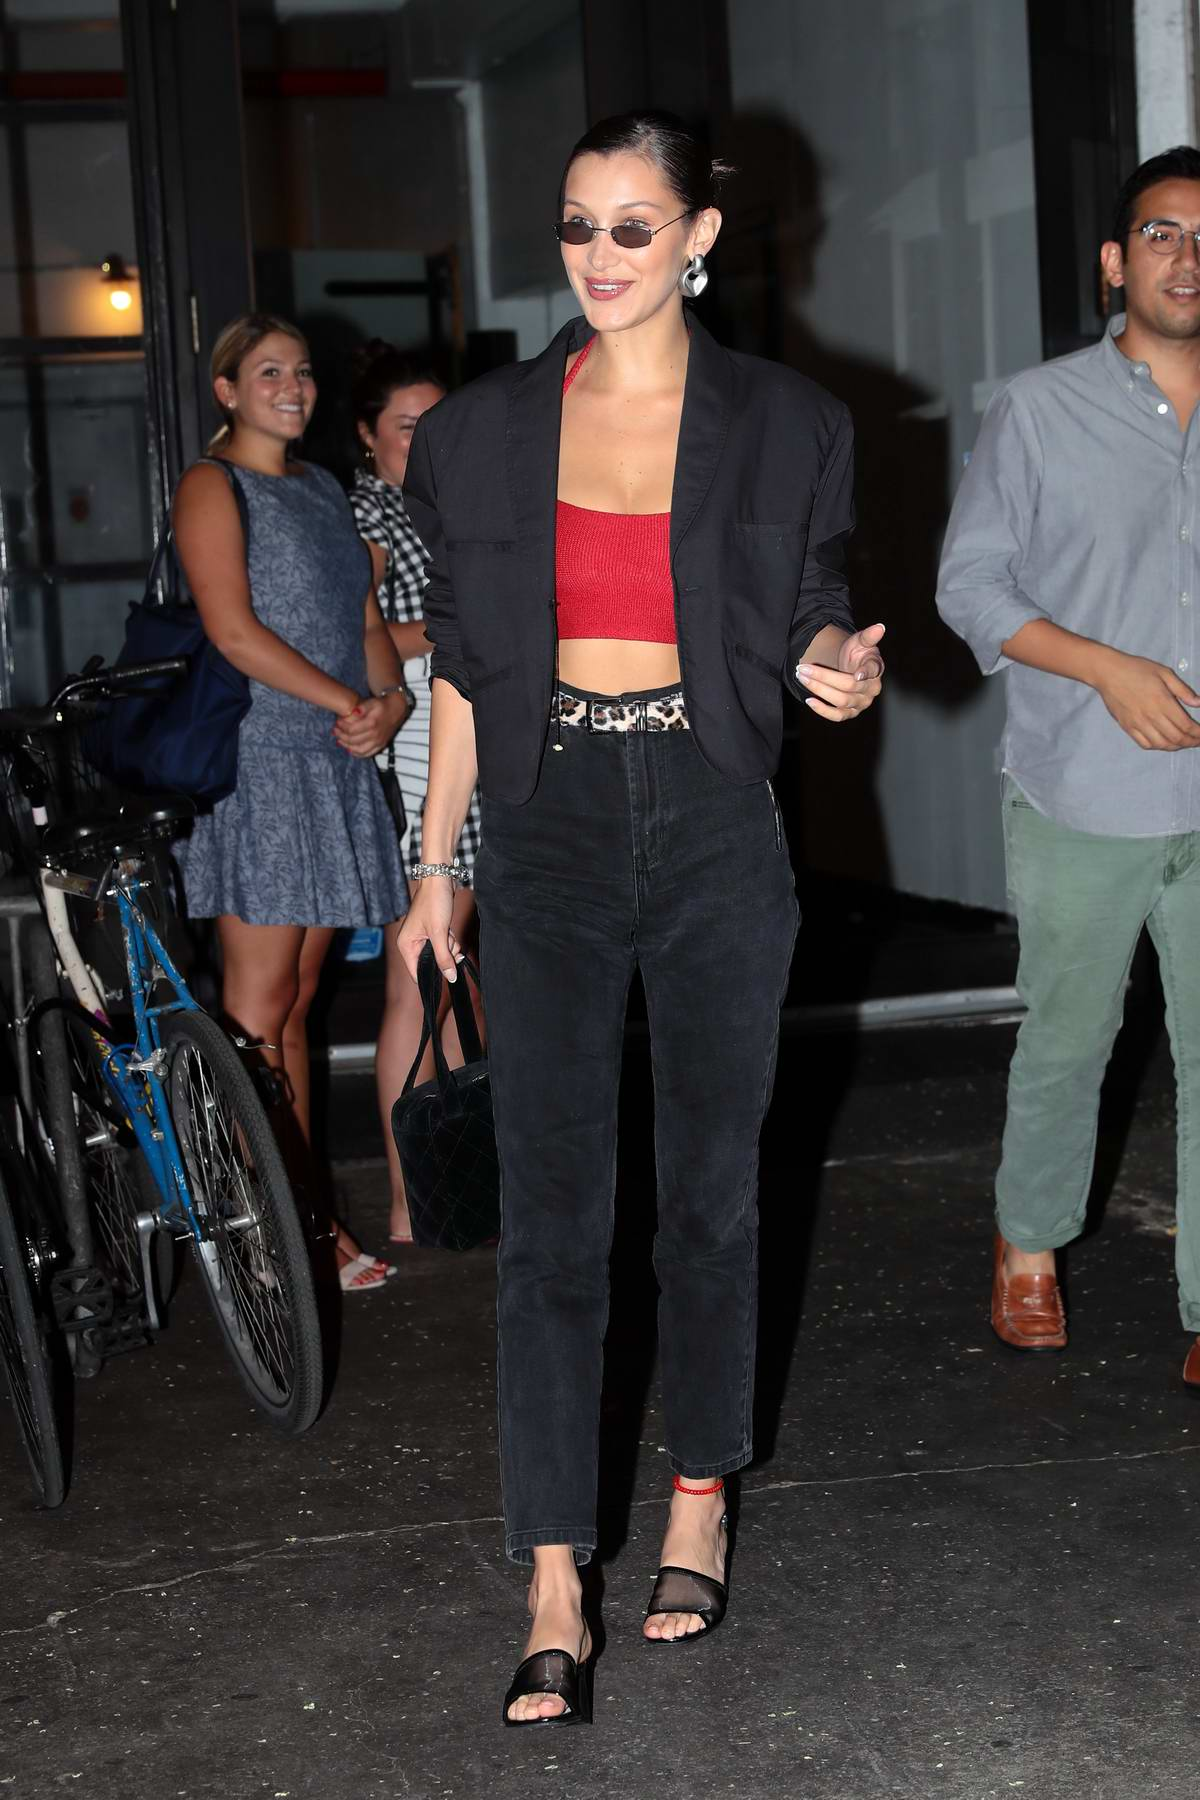 Bella Hadid grabs dinner with her friends at Barbuto Italian Restaurant in New York City